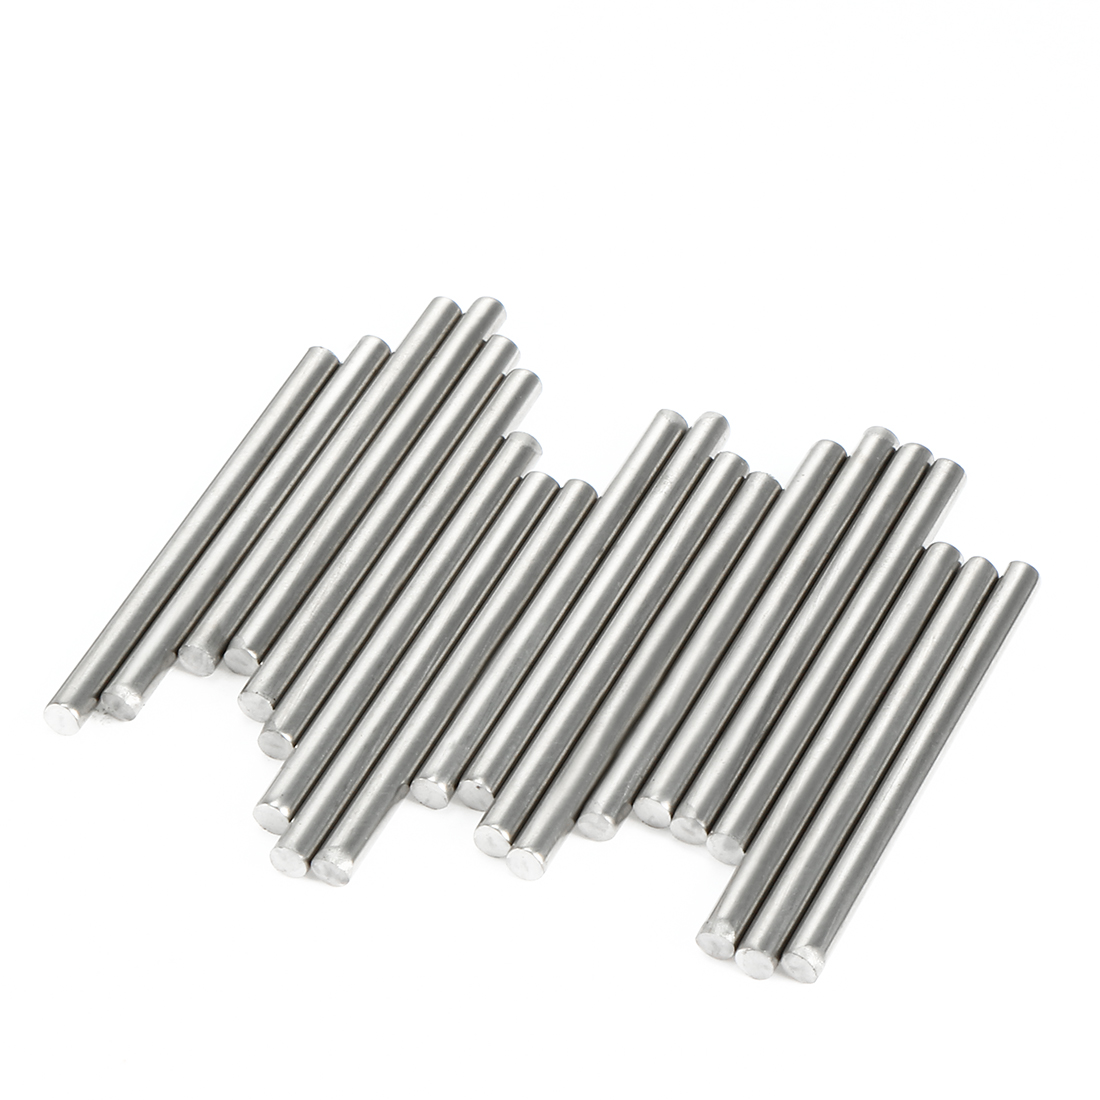 20Pcs Stainless Steel Round Shaft Rods Axles 2mm x 35mm for RC Toy Car